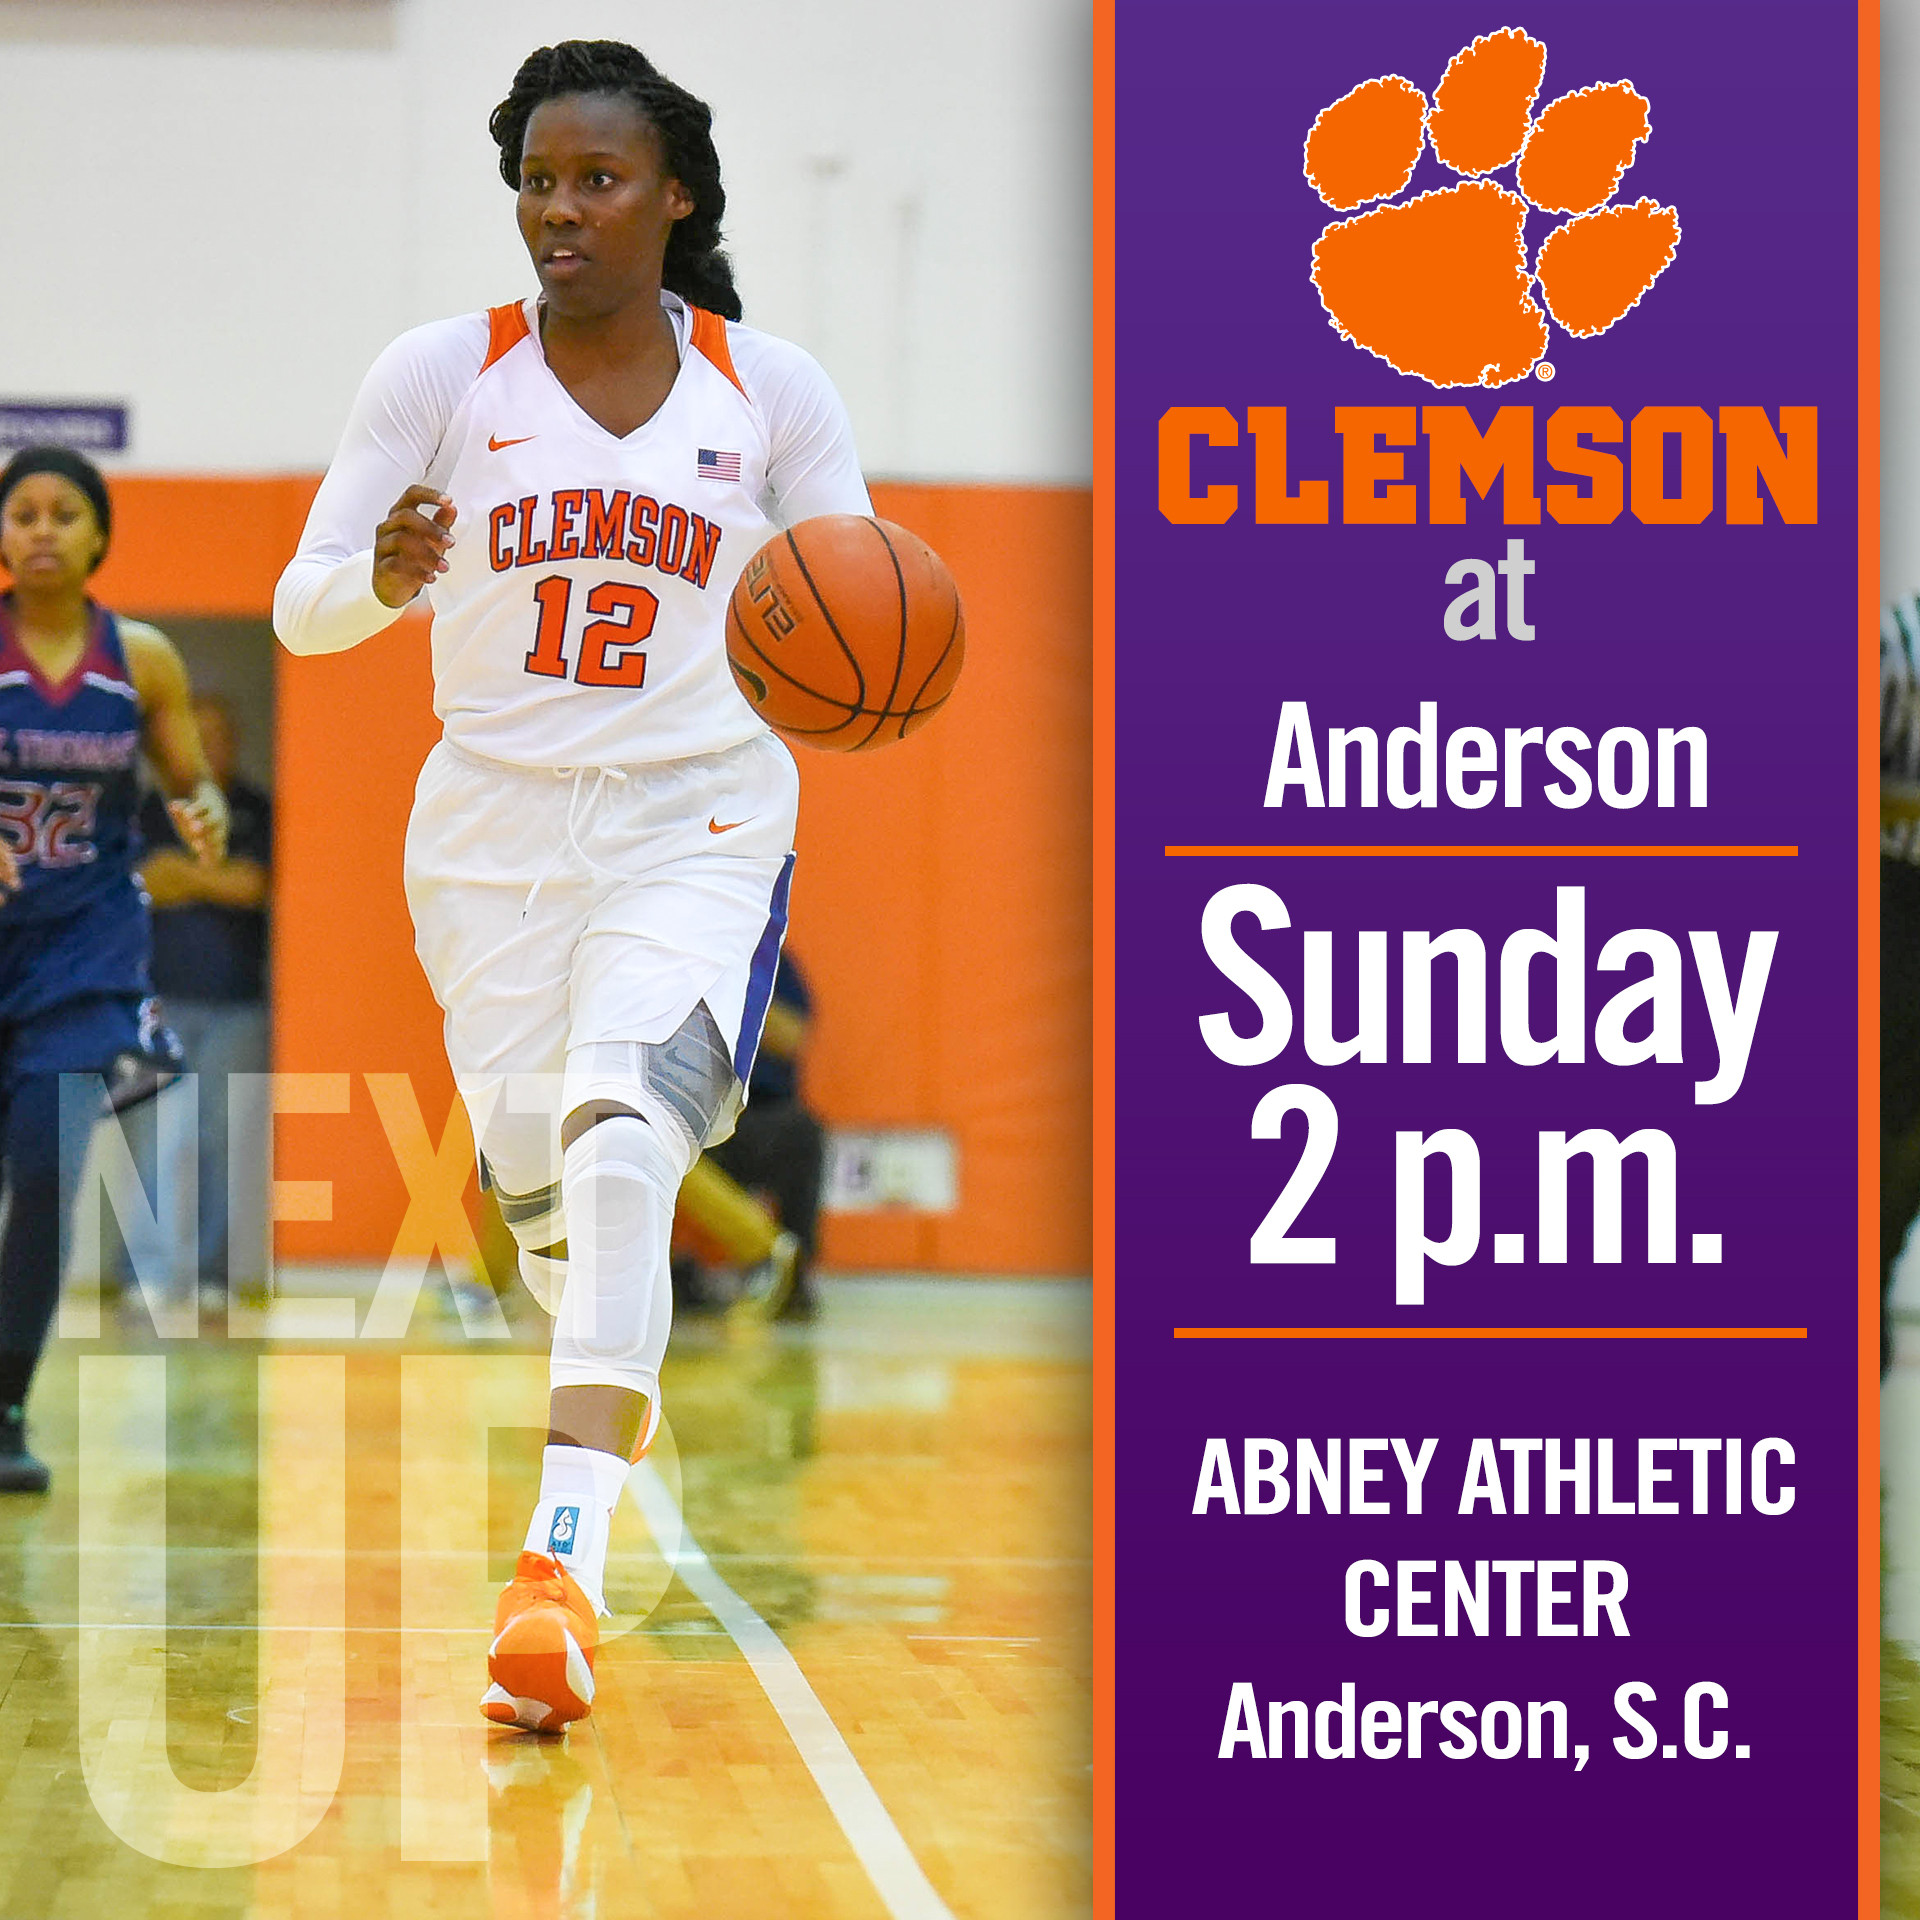 Clemson Travels to Anderson for Final Exhibition Sunday